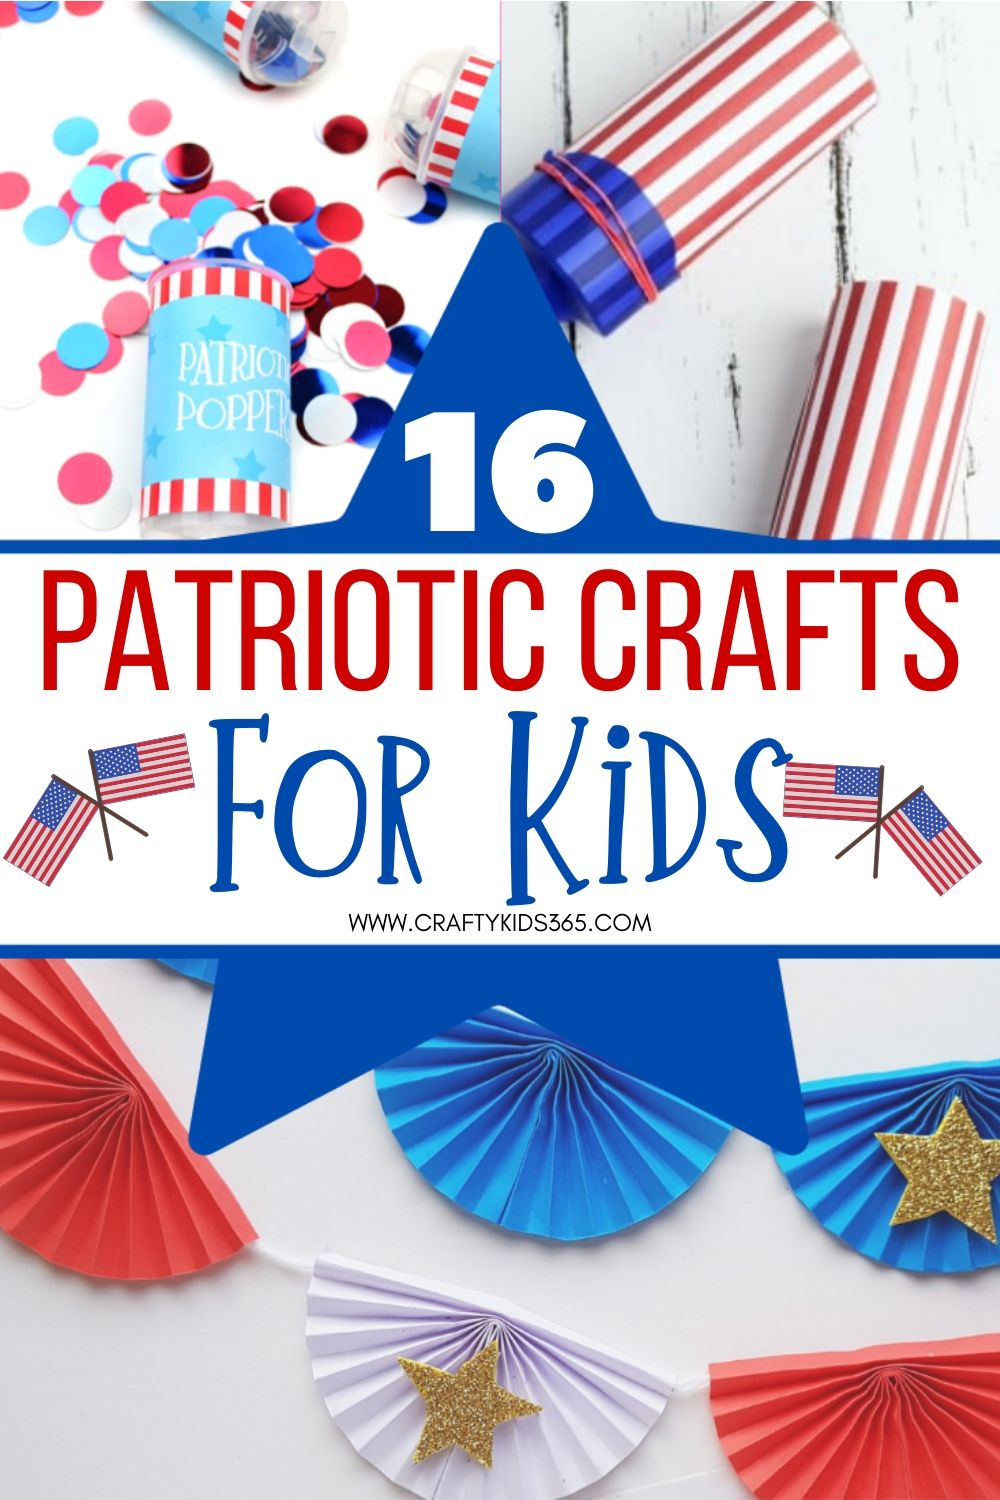 Show your love of red, white and blue. Kids will love to make one of these easy Patriotic Crafts for Kids. Fun craft ideas for any patriotic holiday.